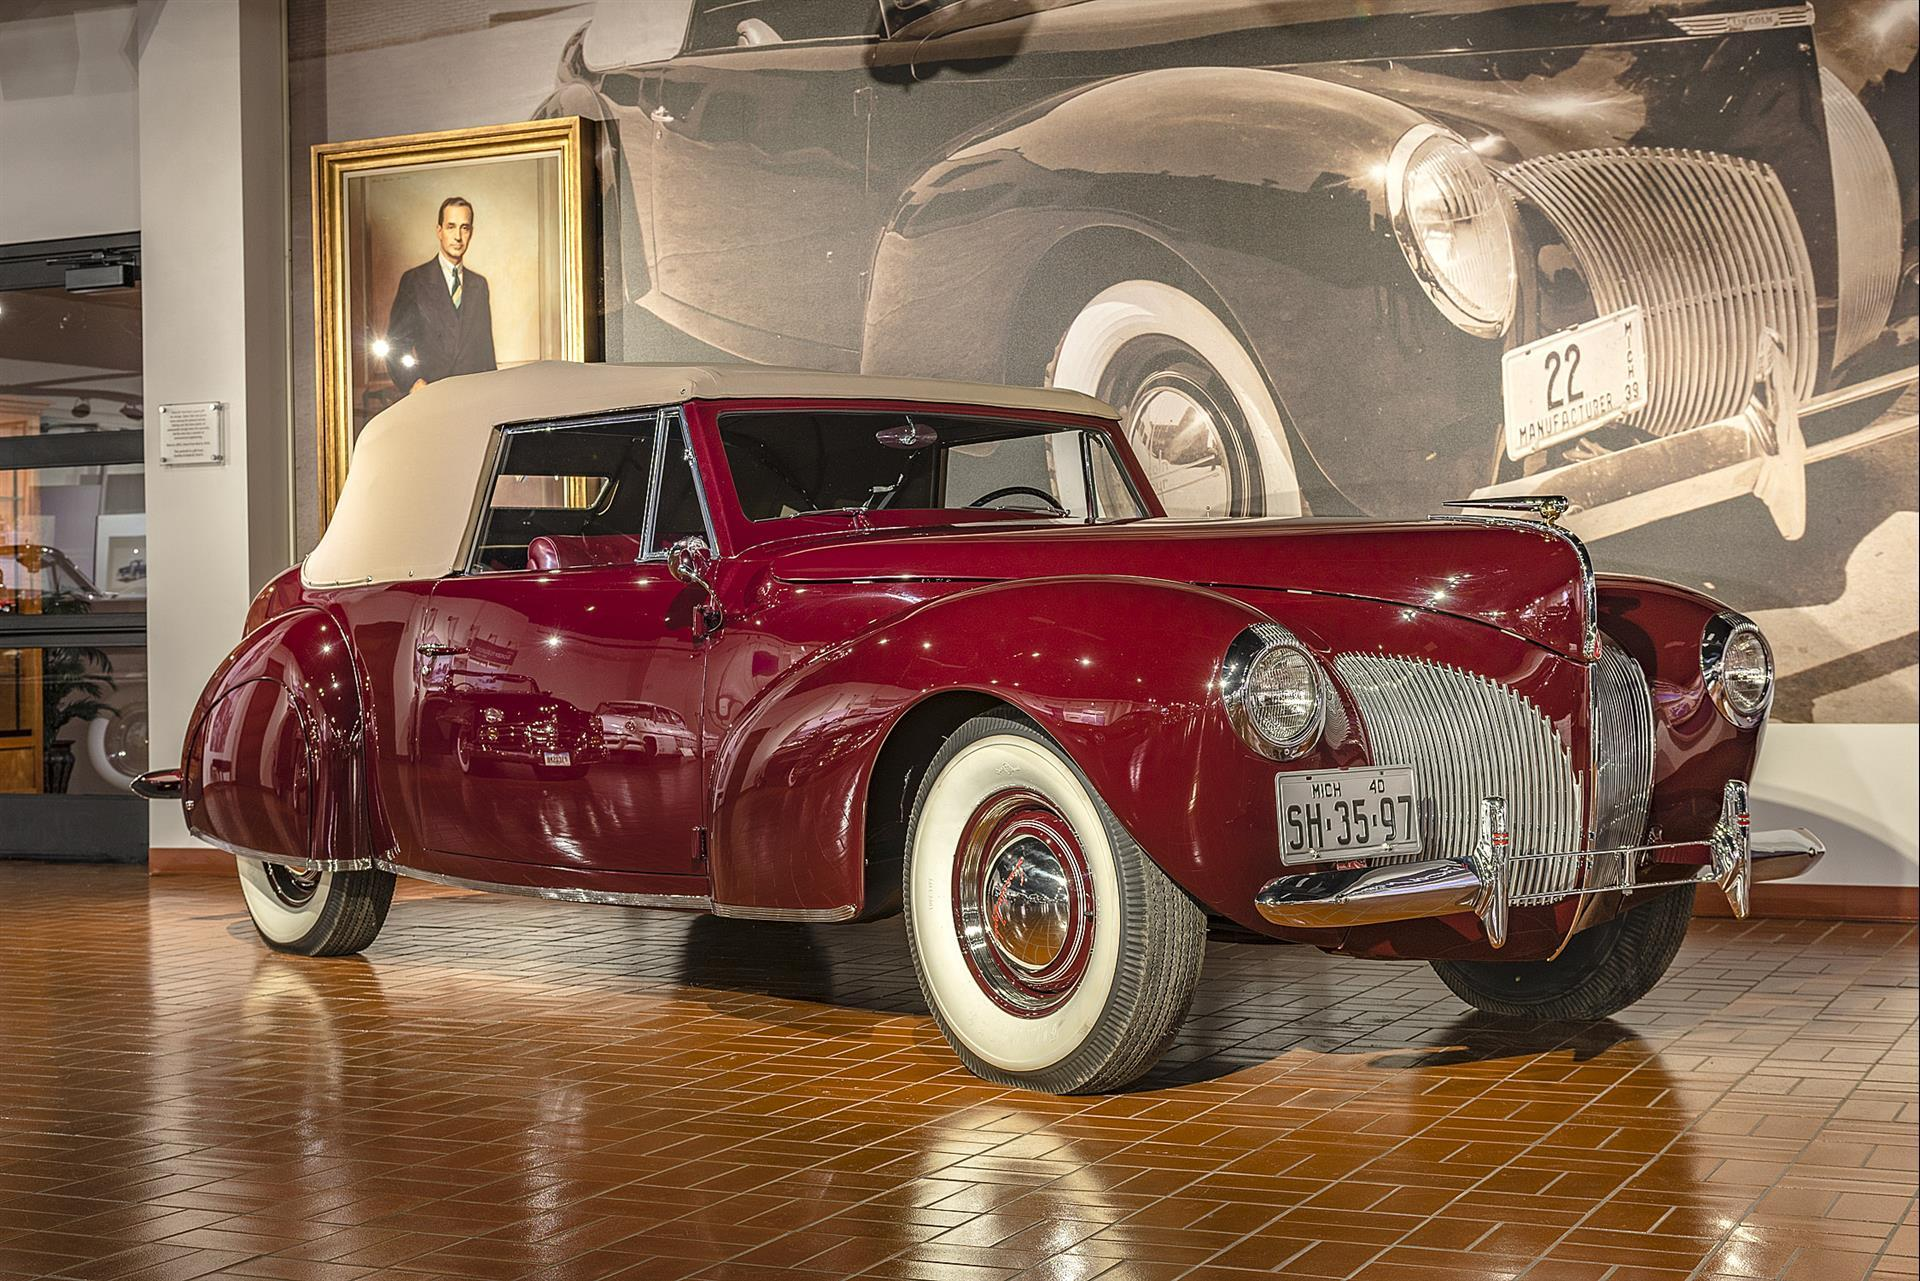 1940 Lincoln-Zephyr Continental cabriolet